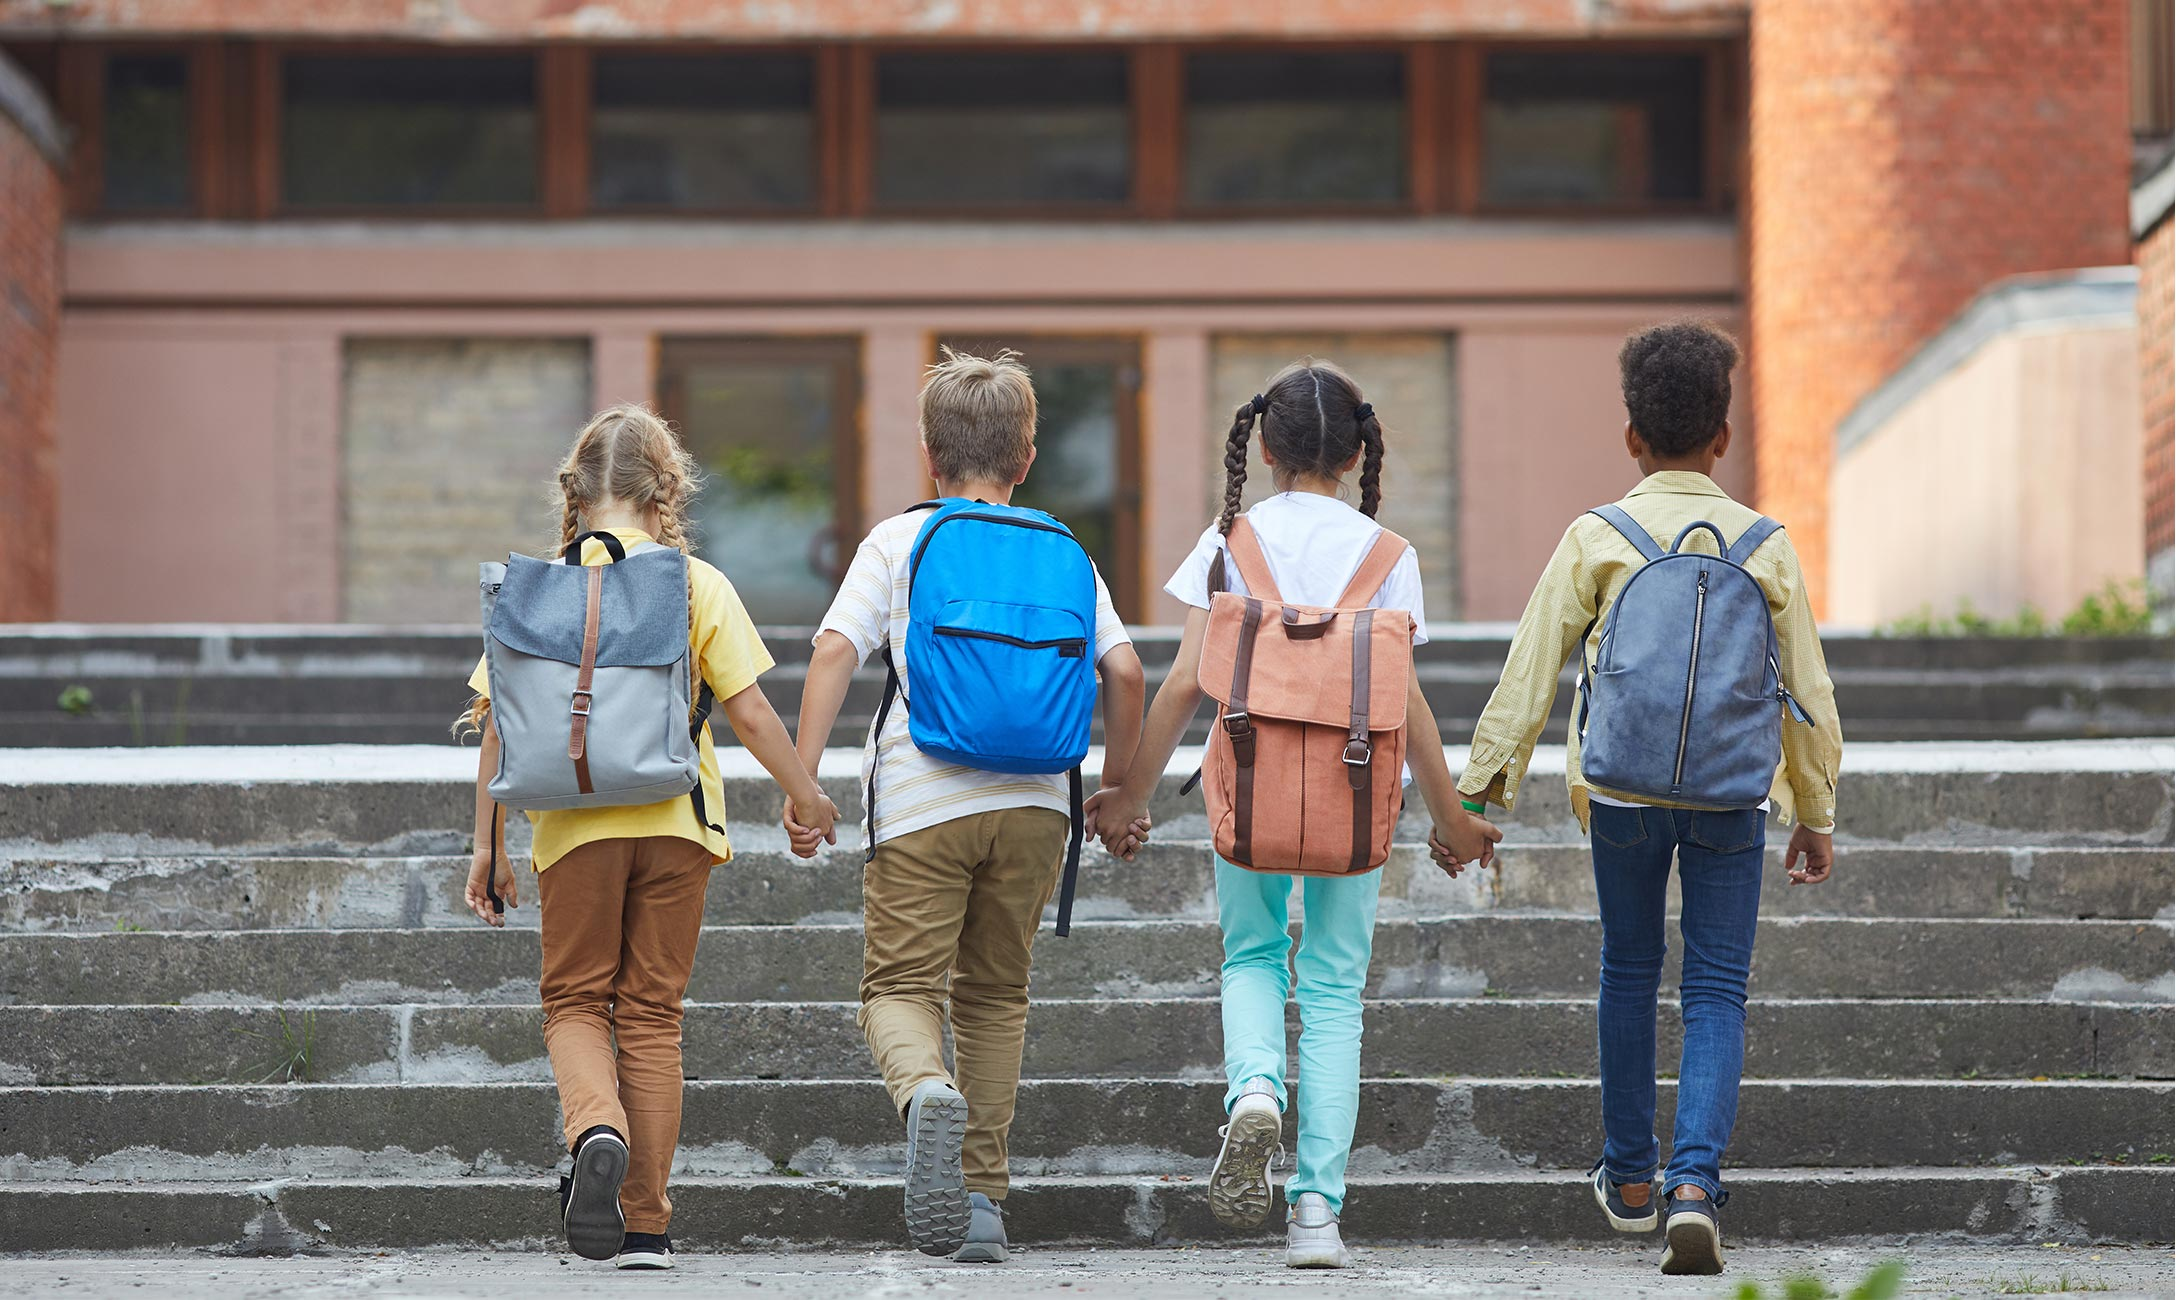 Four children with backpacks walking up steps holding hands.